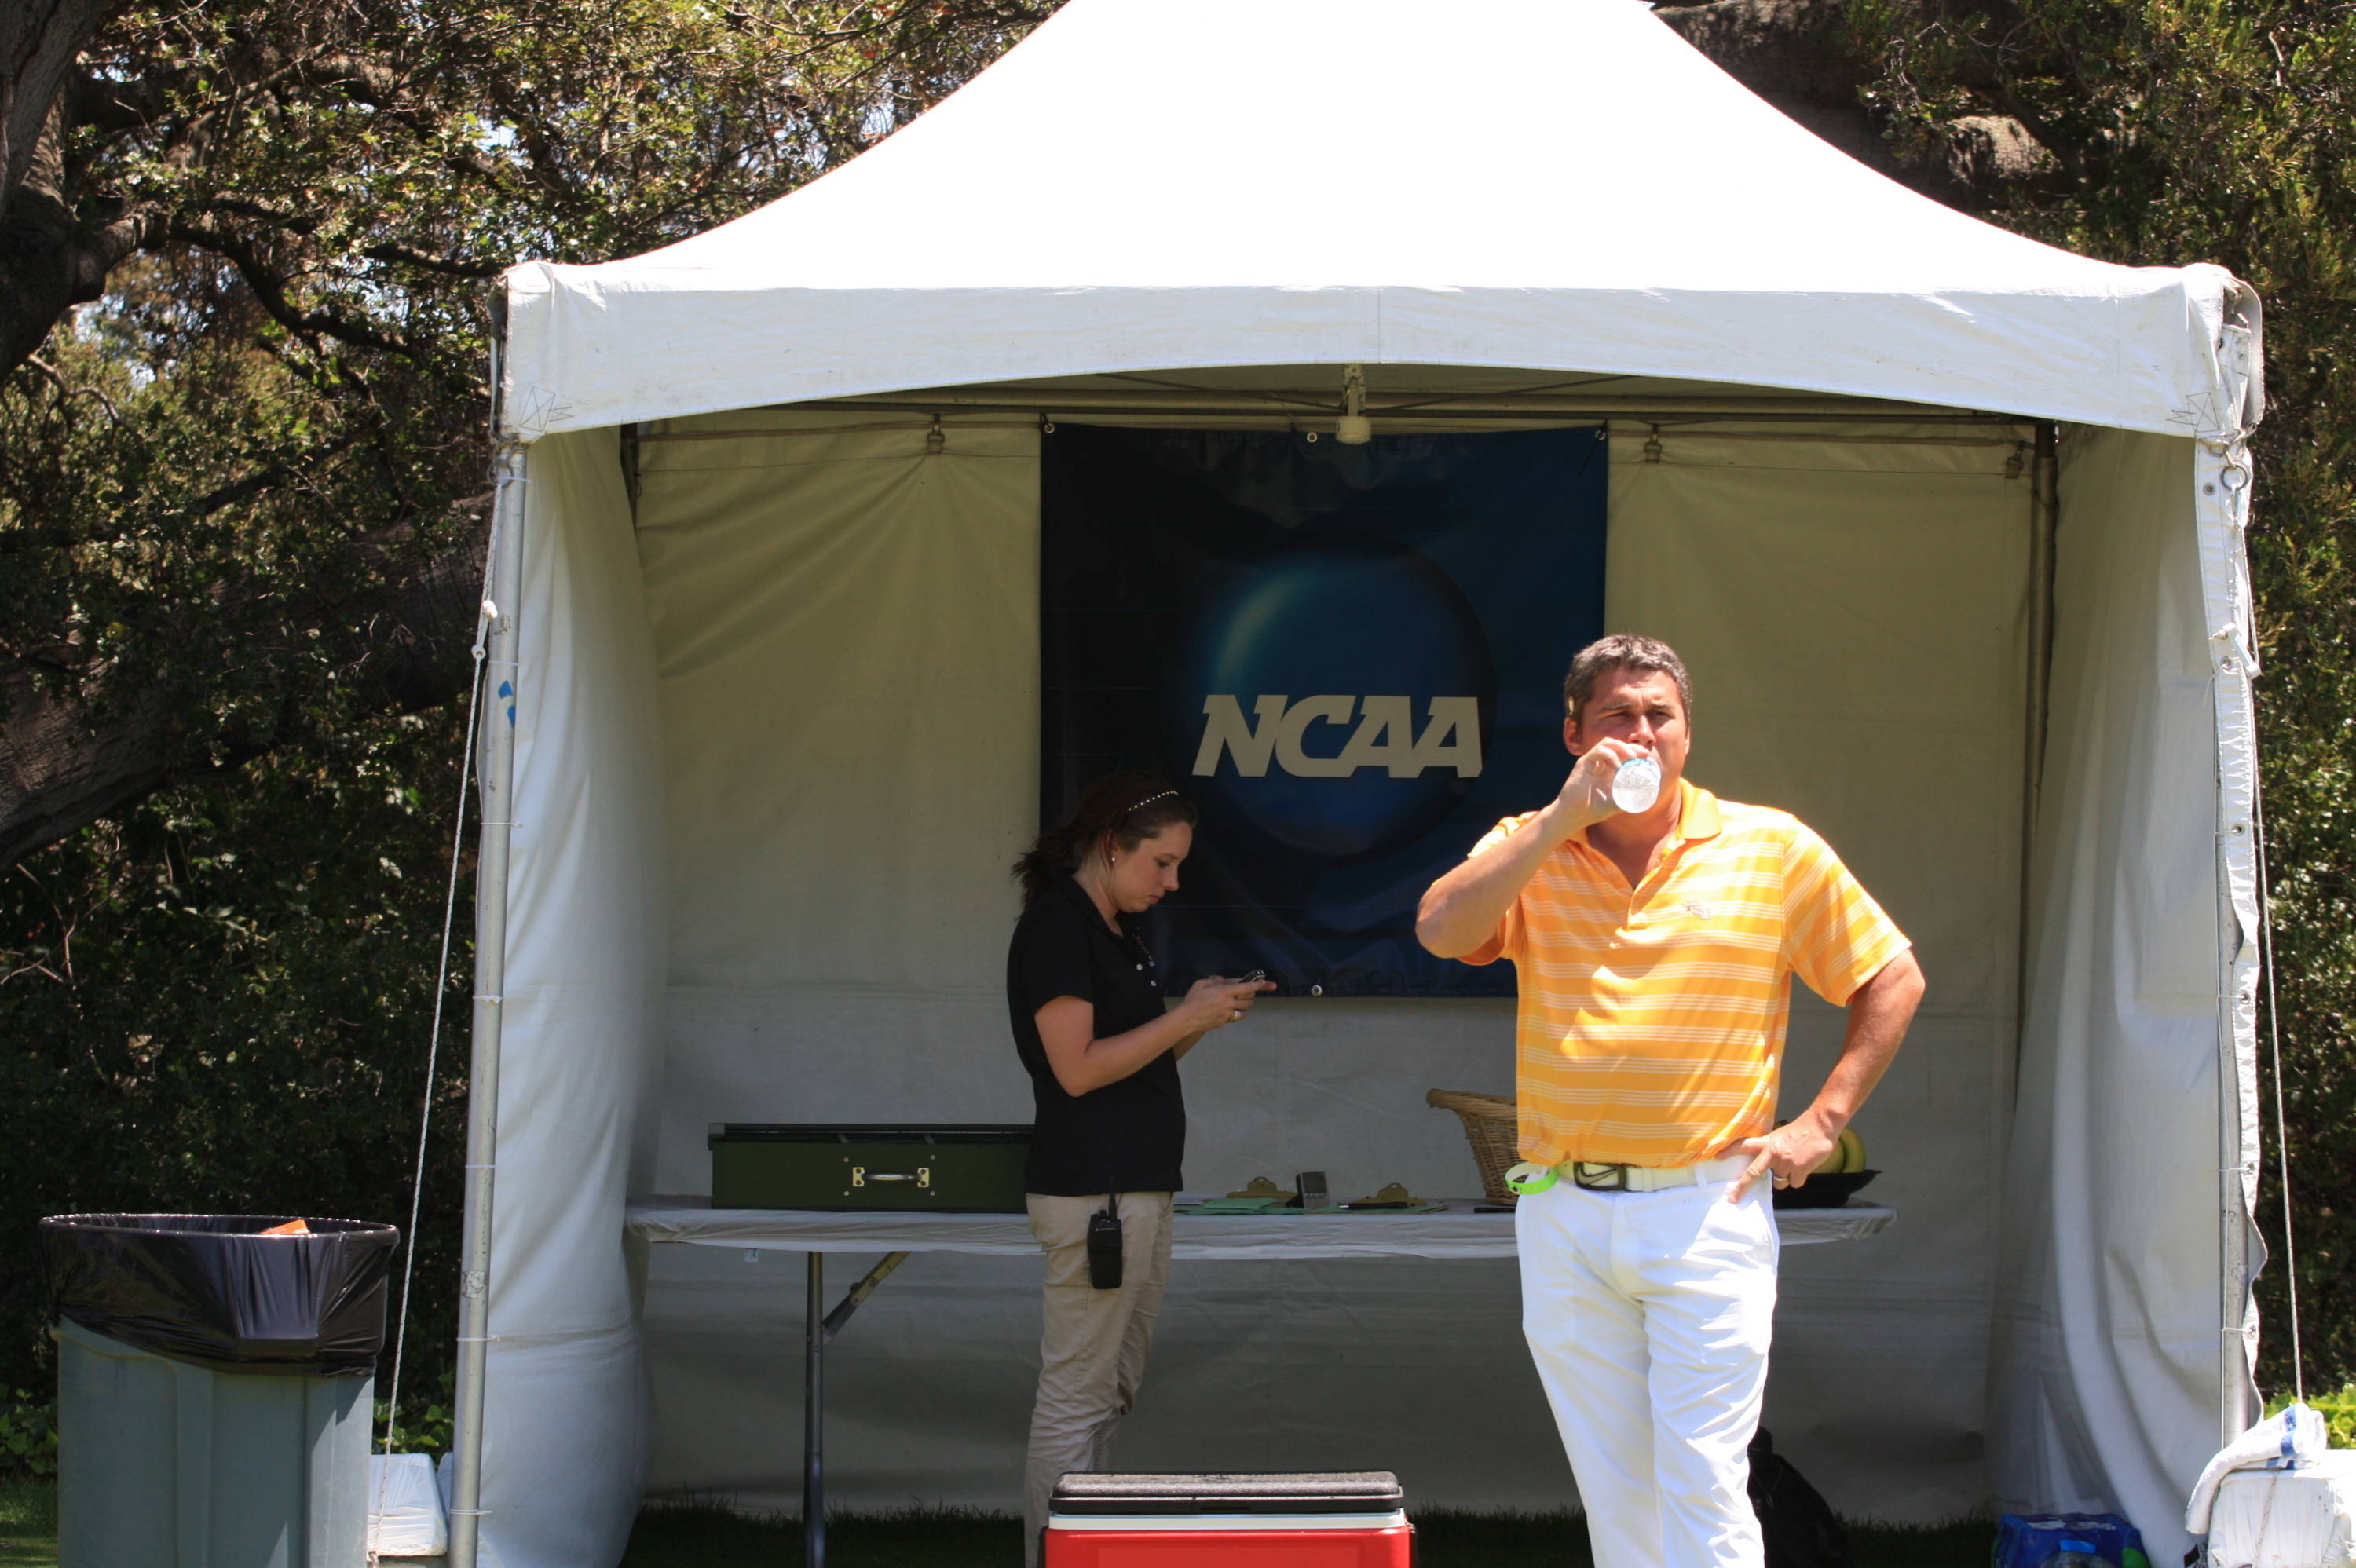 Robert Duck -- 2013 NCAA West Regional Championship